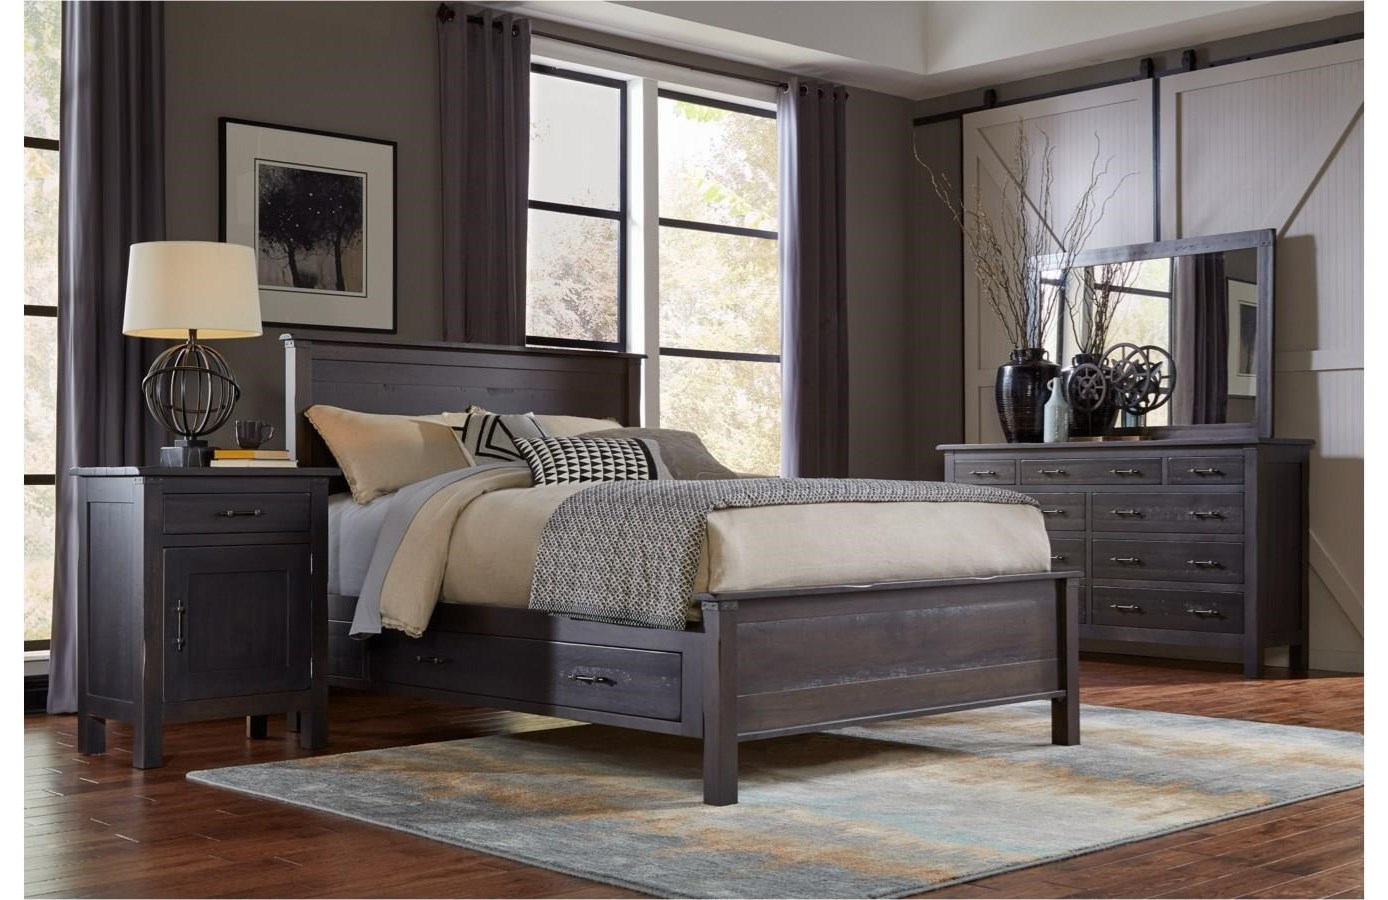 Wildwood Solid Wood Bedroom Group by Daniels Amish at Sprintz Furniture